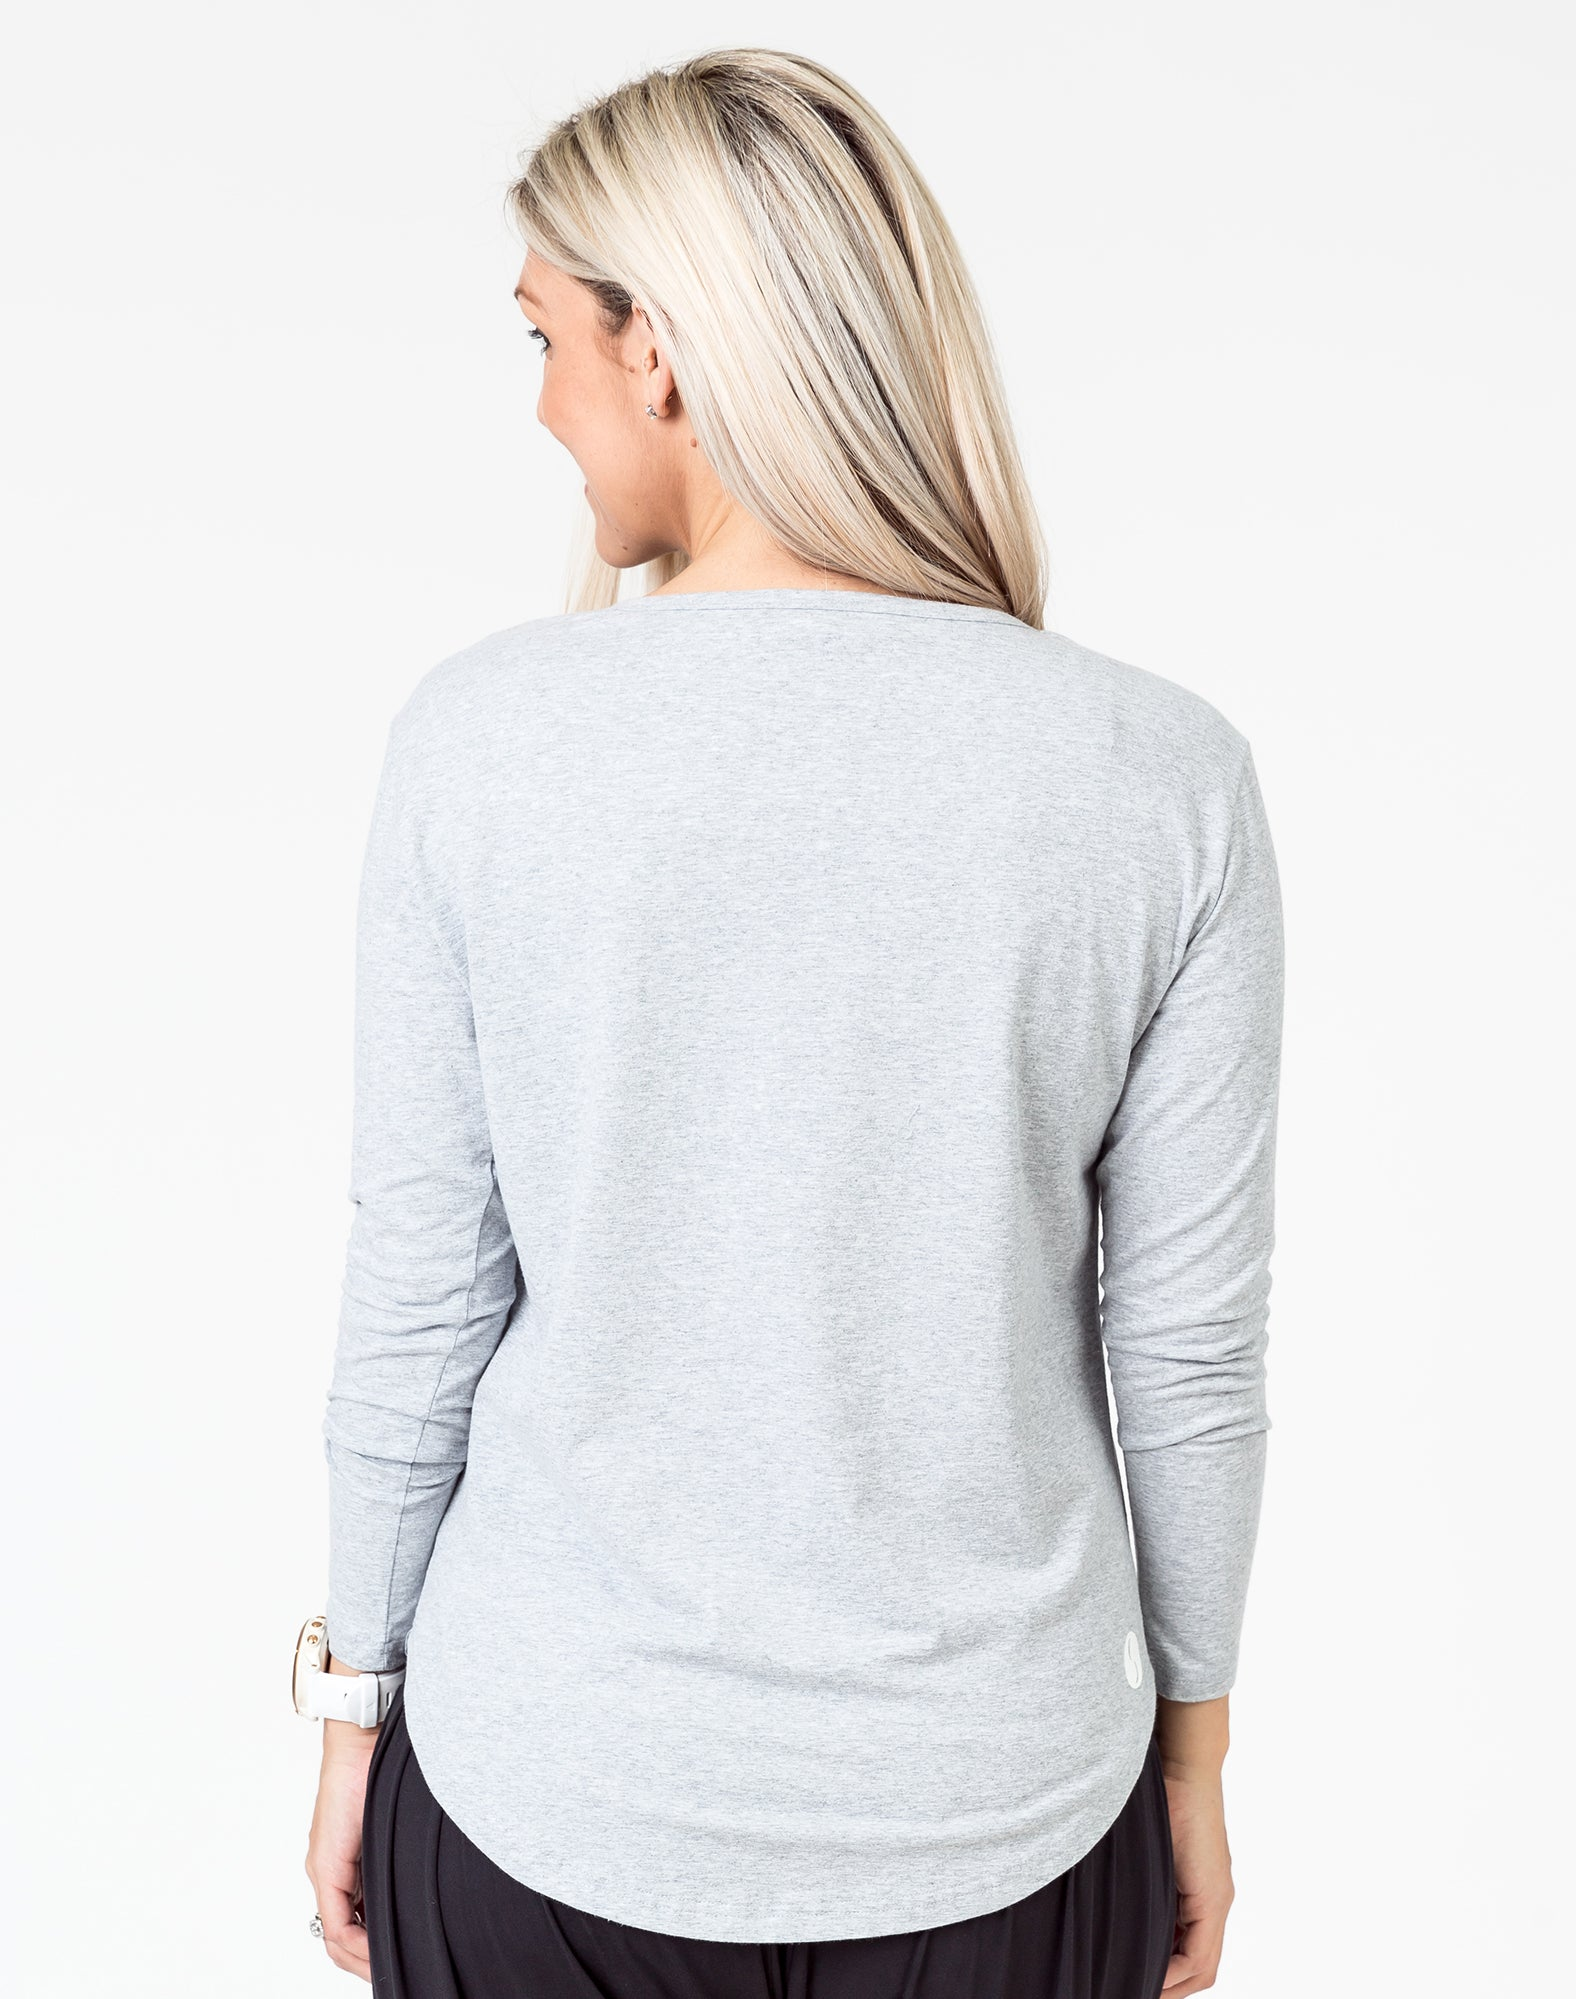 back view of a mum wearing a grey maternity top with long sleeves